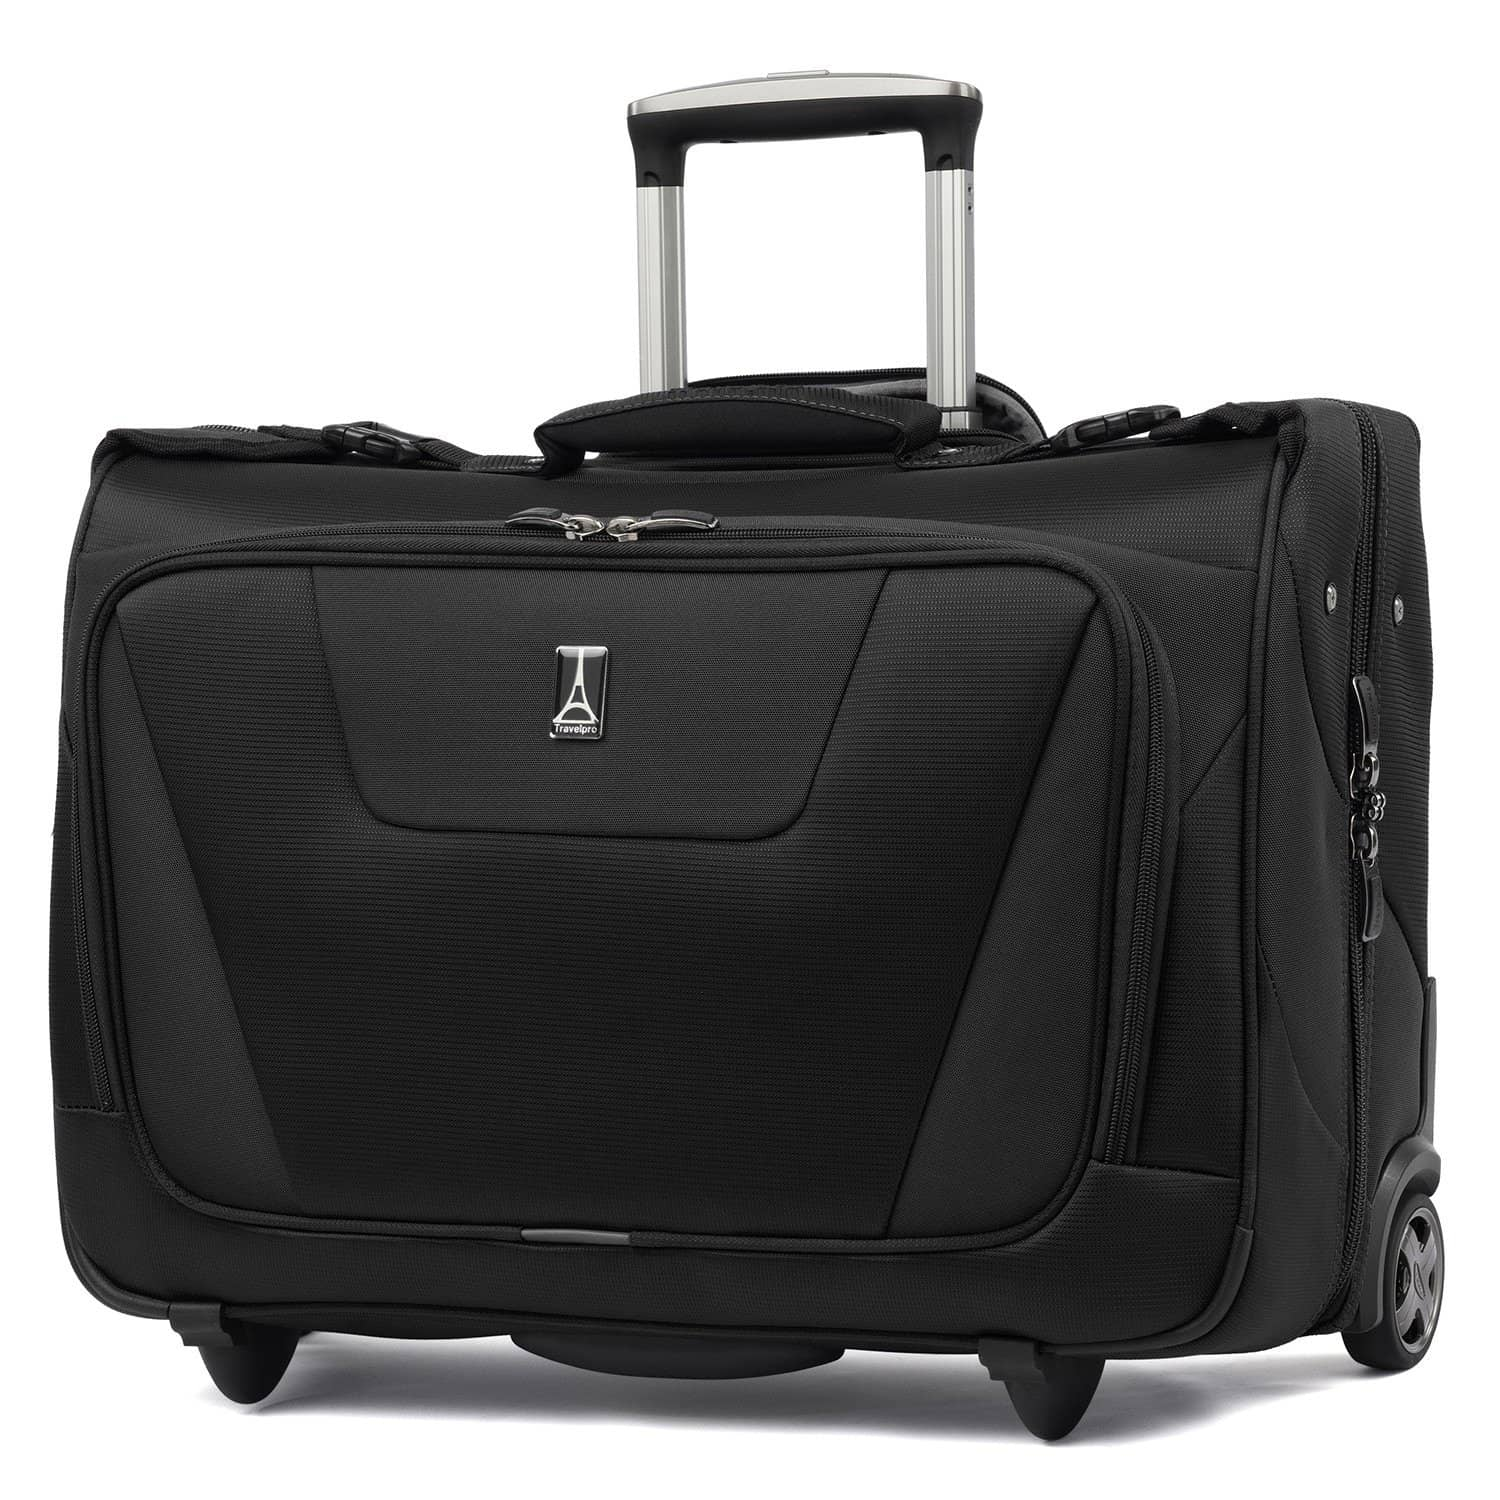 Travelpro Maxlite® 4 Rolling Carry-on Garment Bag BLACK